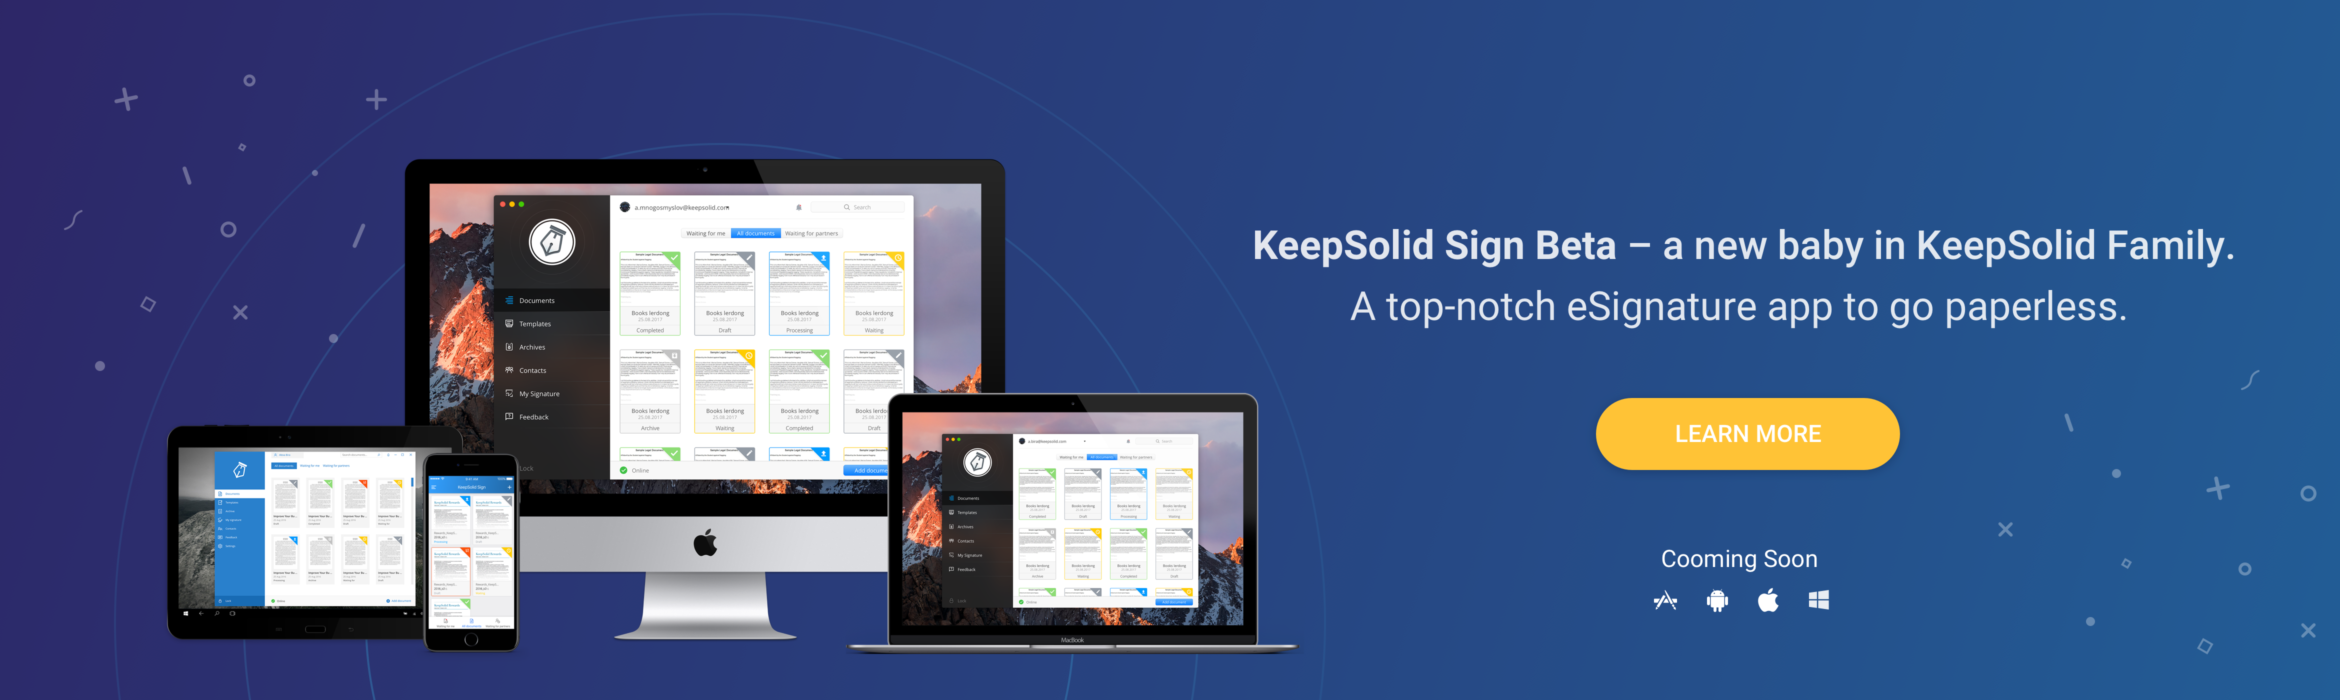 KeepSolid Sign blog image